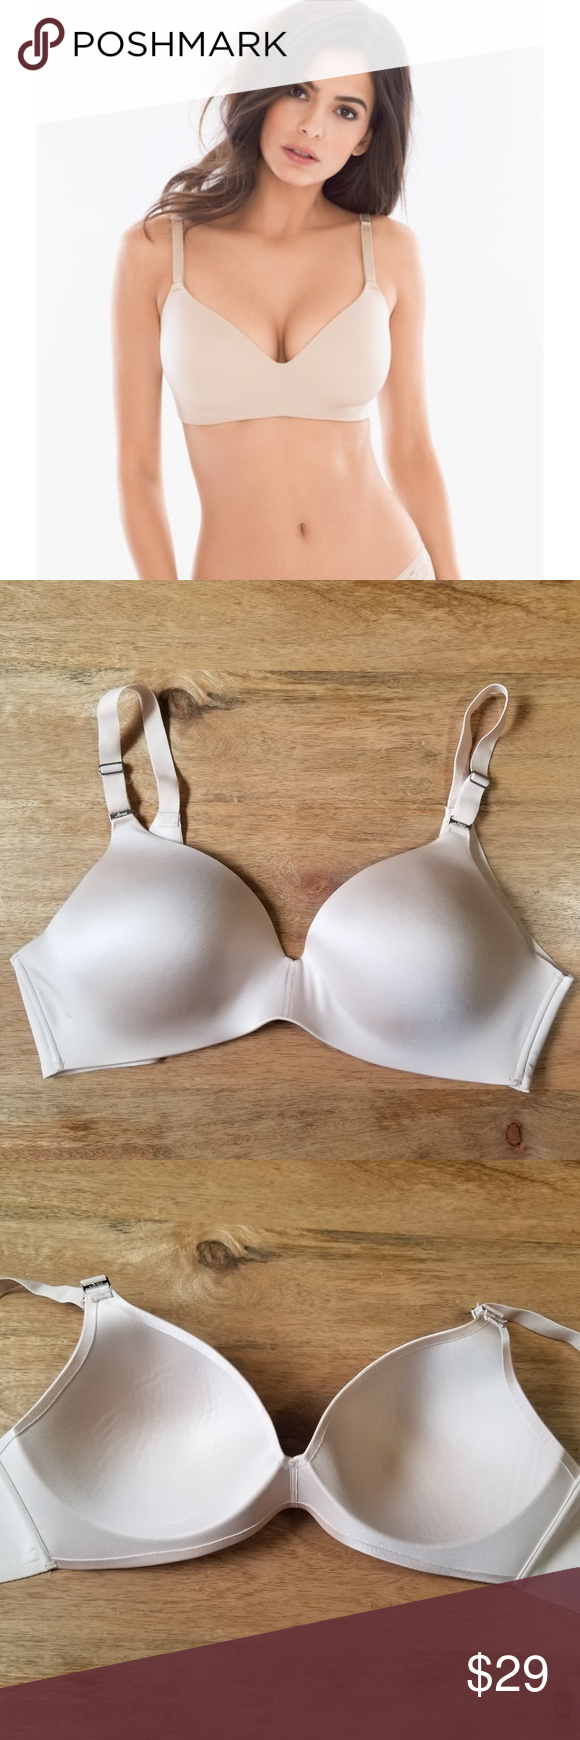 c7ac69db46117 Soma Vanishing Back Wirefree Bra Lt Nude 36C Stunning smoothing wireless bra.  Style is called Vanishing Bra Wirefree. Light nude color.